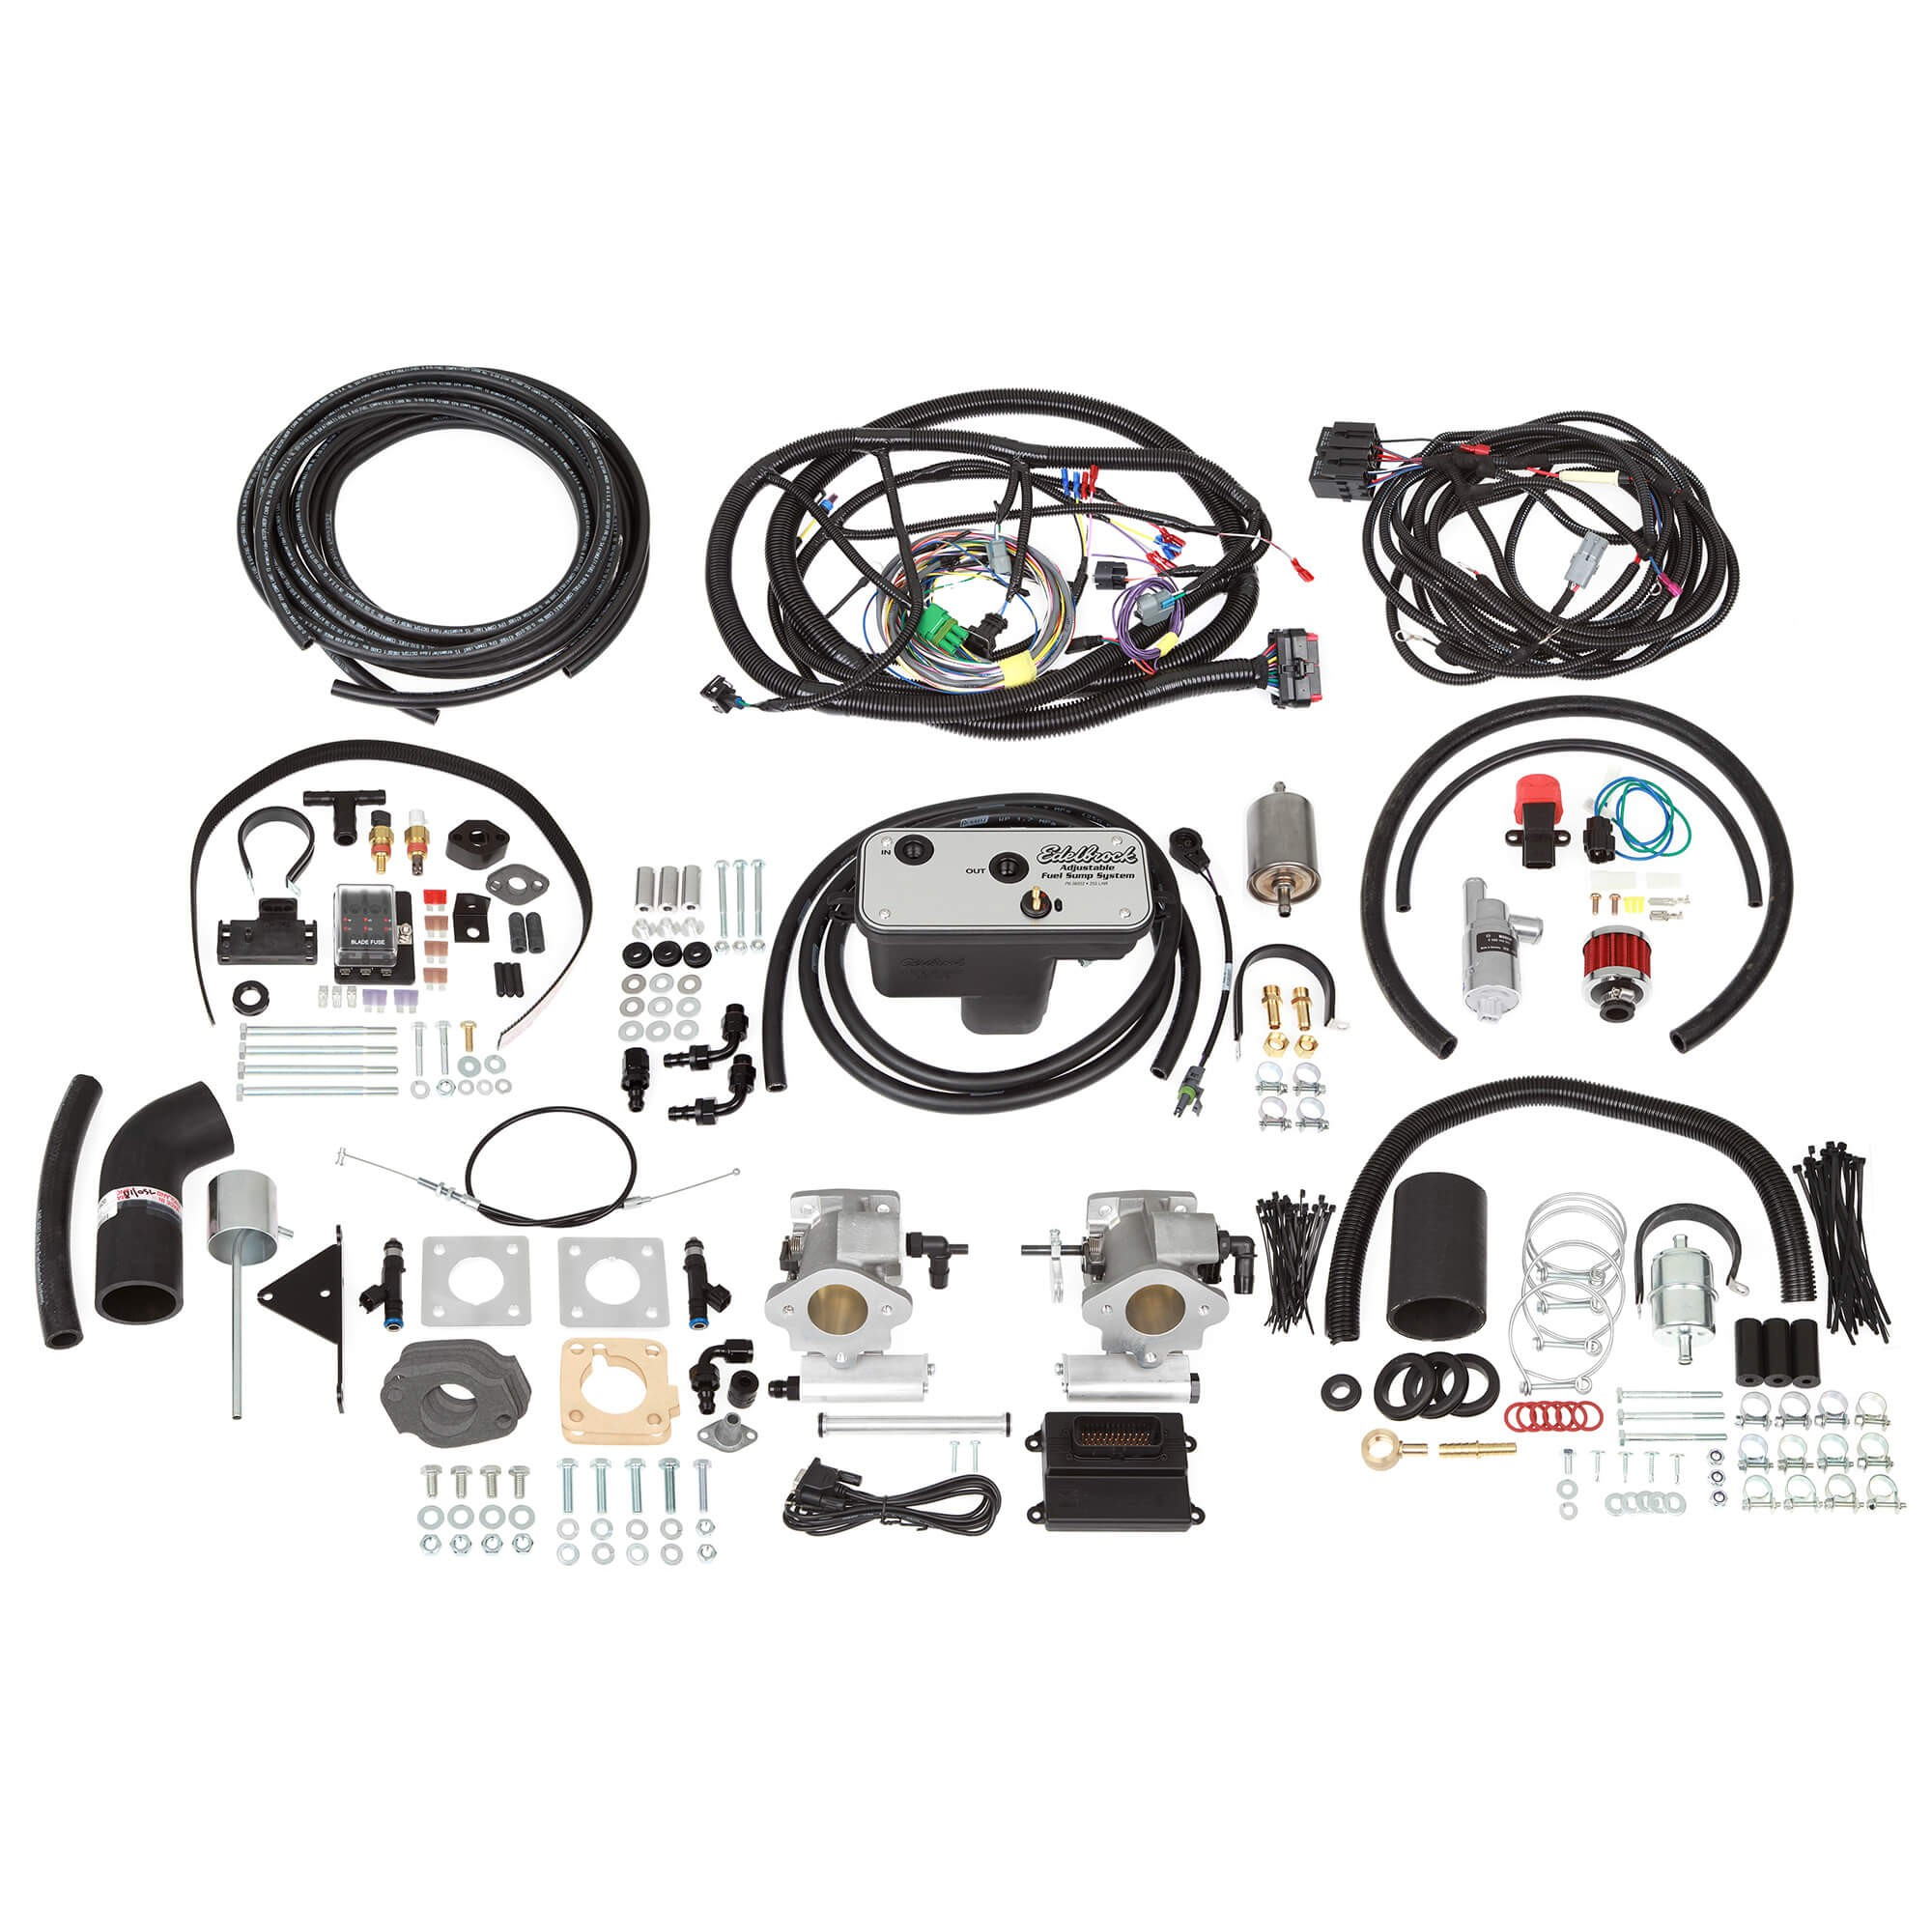 366 355 Drive Efi Mgb Fuel Injection Kit By Cobalt